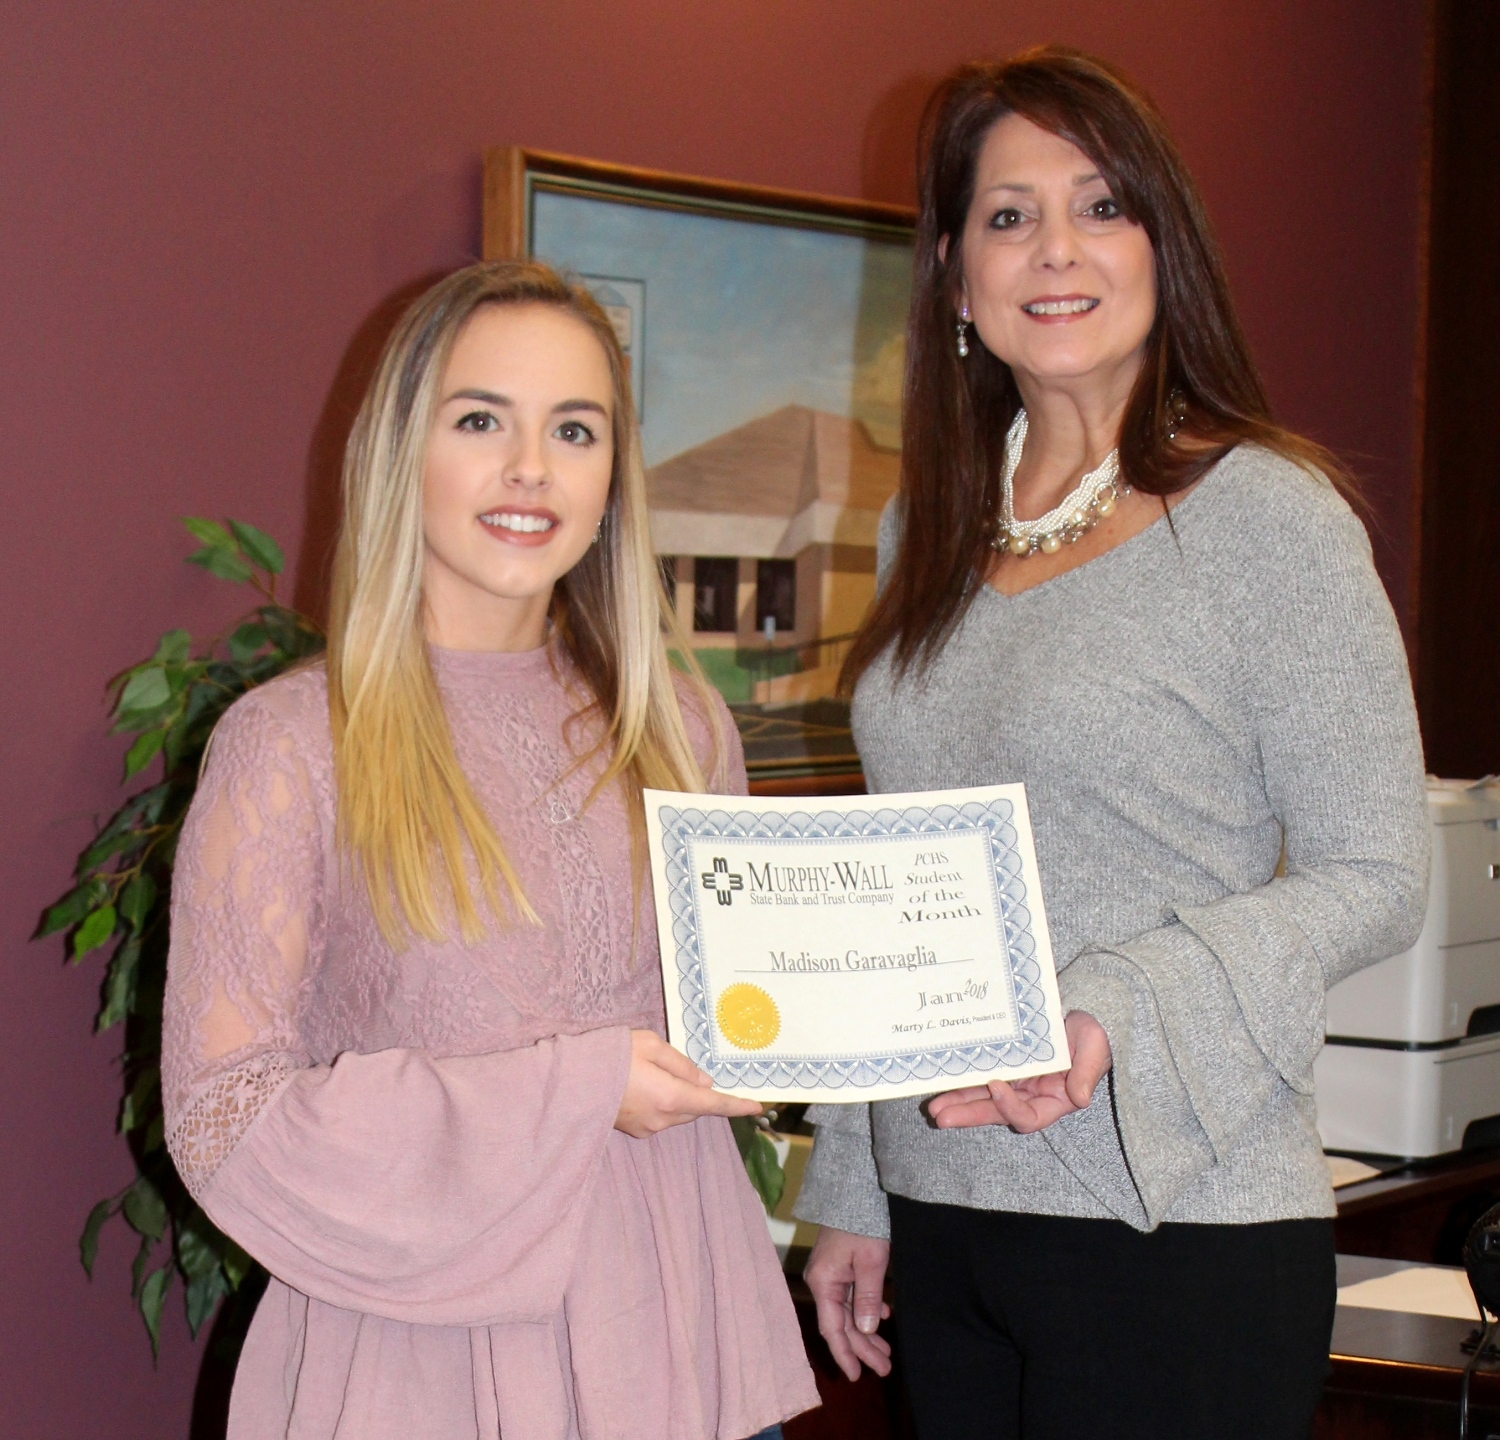 Murphy-Wall State Bank and Trust Company COO Susan Davis gives PCHS student Madison Garagvalia the 2018 January Student of the Month award